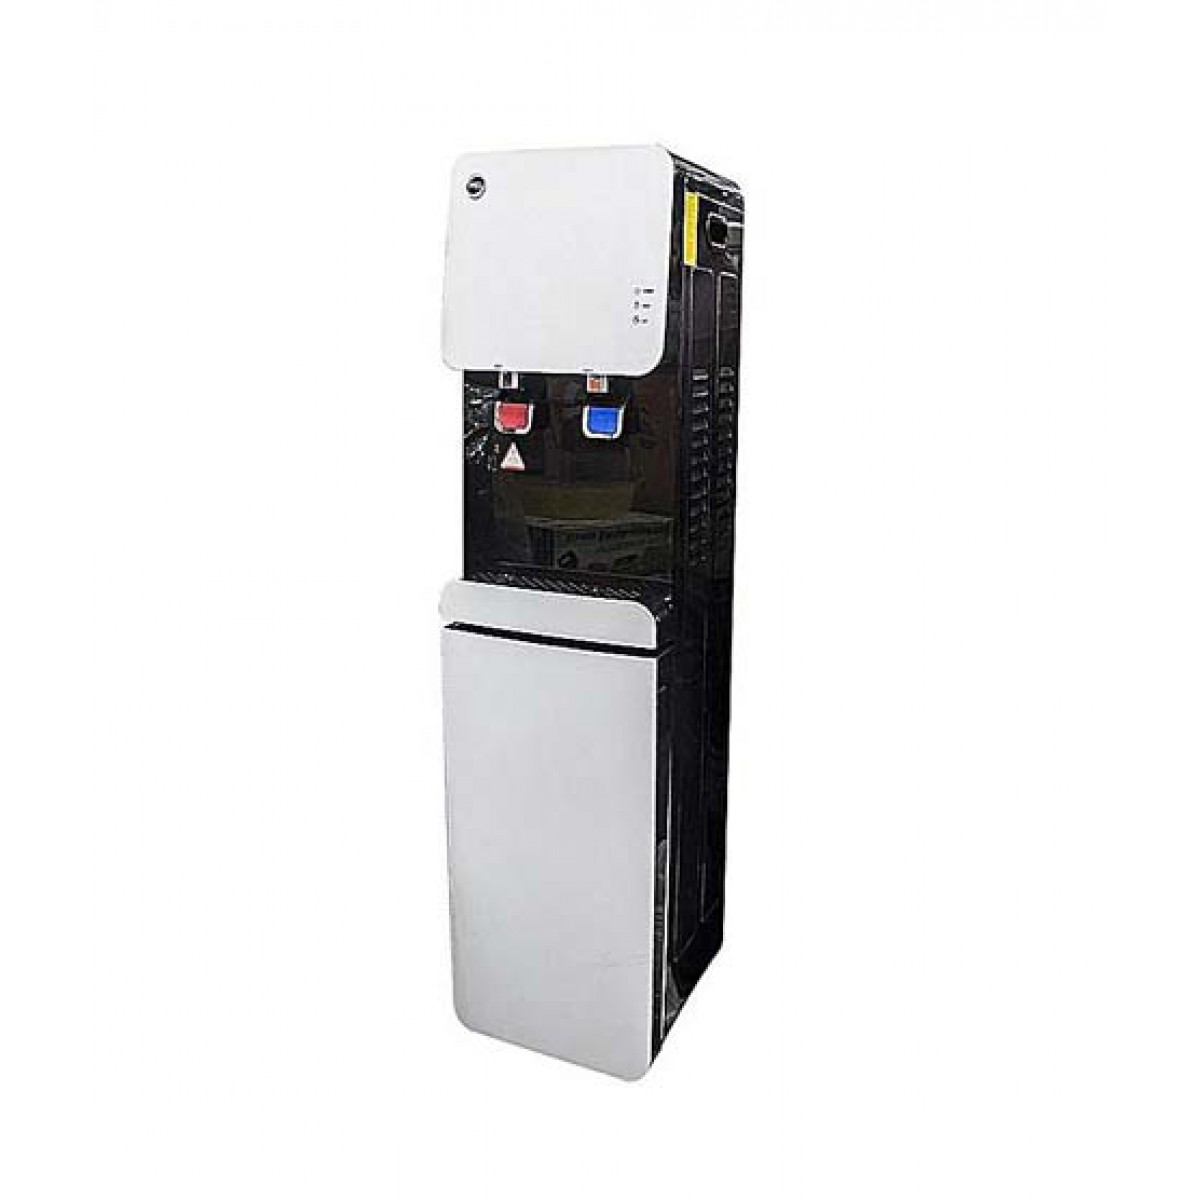 PEL Smart Water Dispenser - PWD -115 Smart